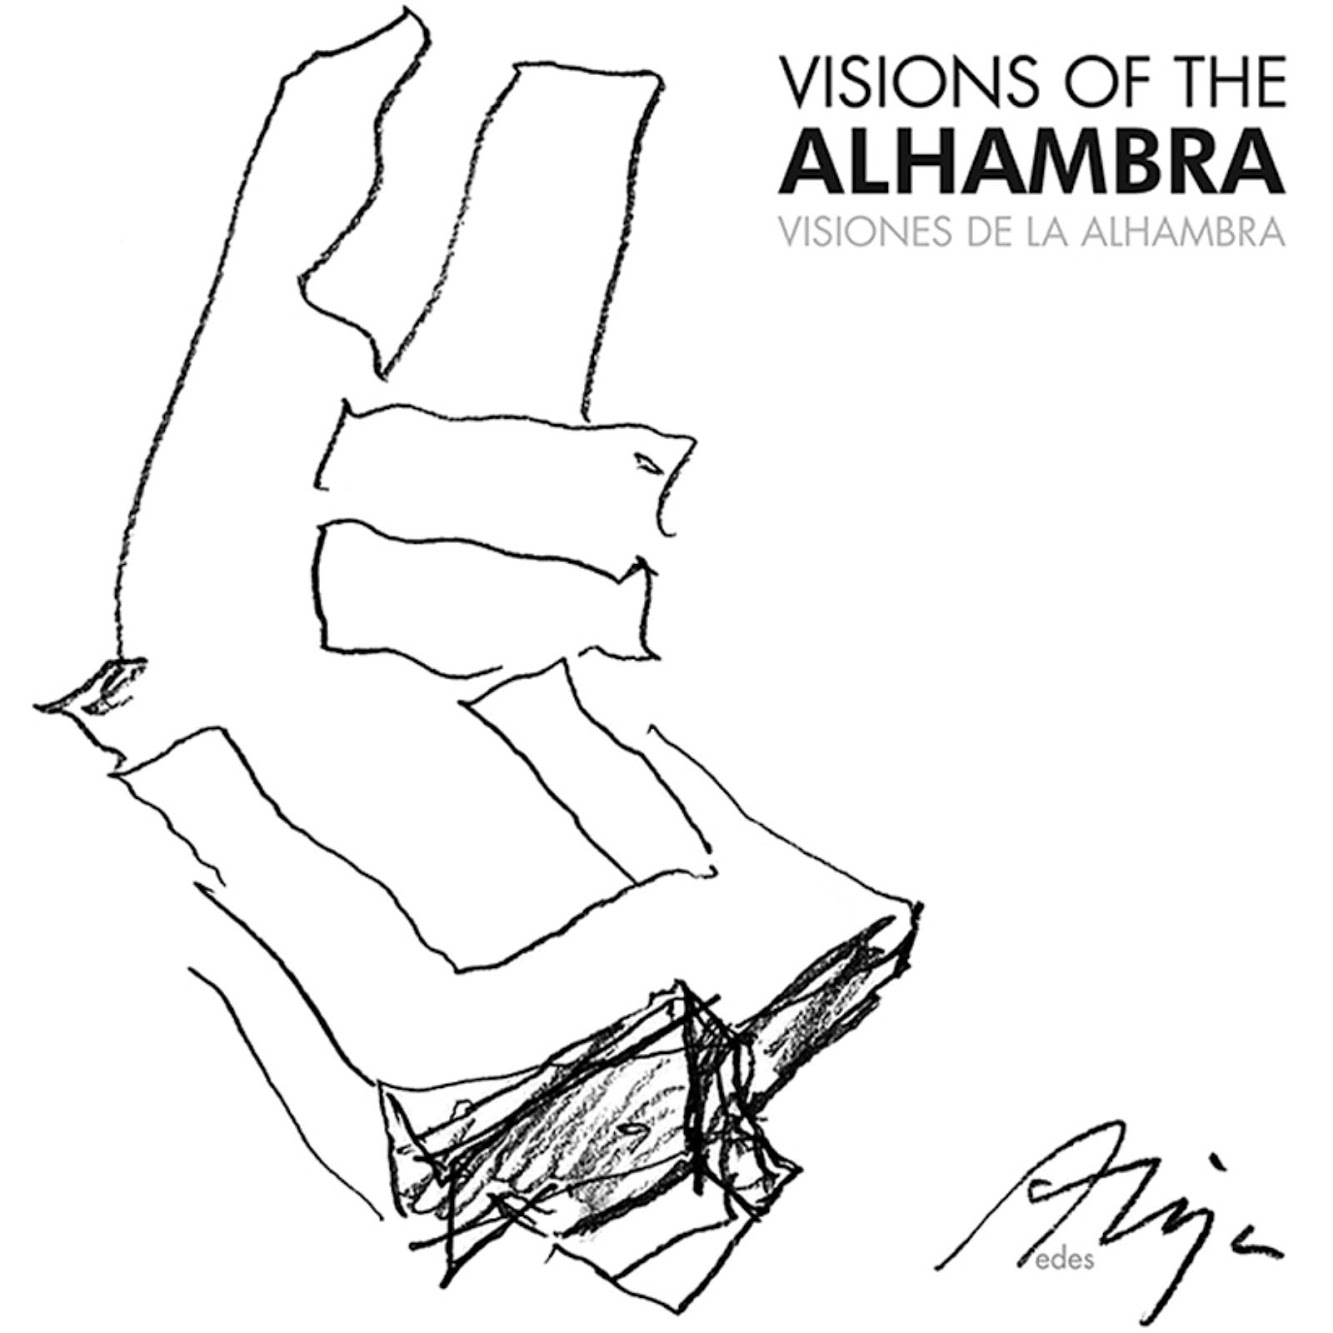 Germany: VISIONS of the ALHAMBRA by ÁLVARO SIZA VIERA